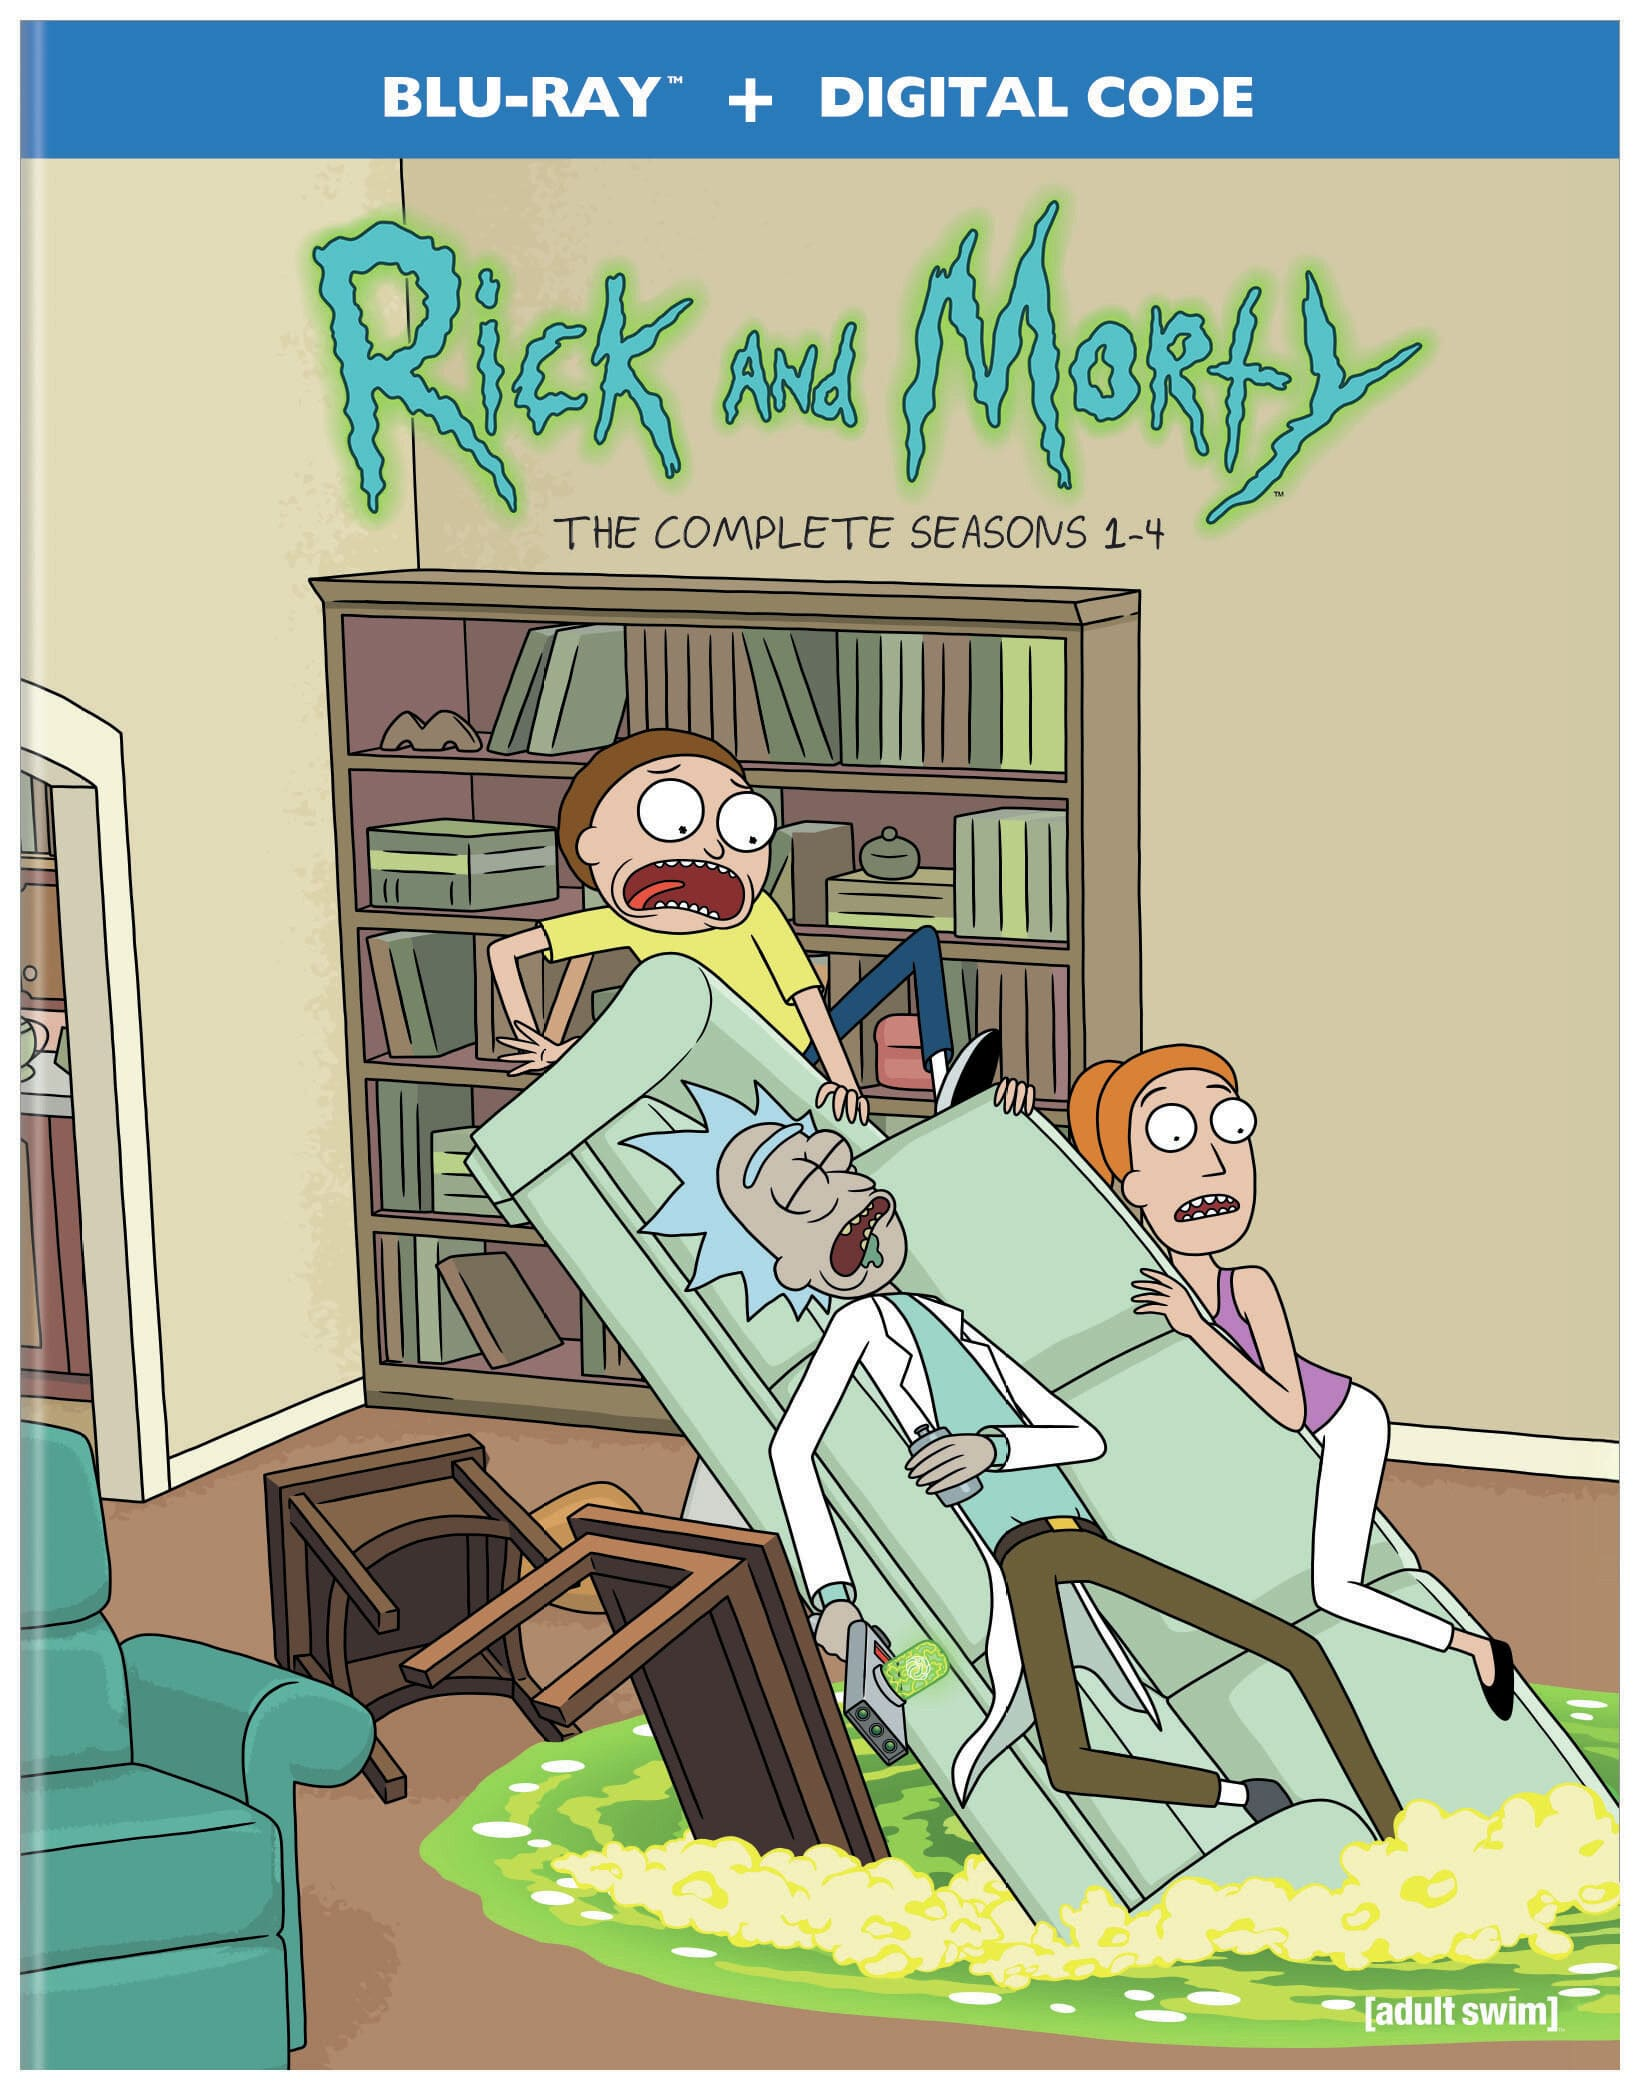 RICK MORTY S1 4 1000797621 BD DGTL SC 2D FINAL DOM SKEW 8ab95cf1